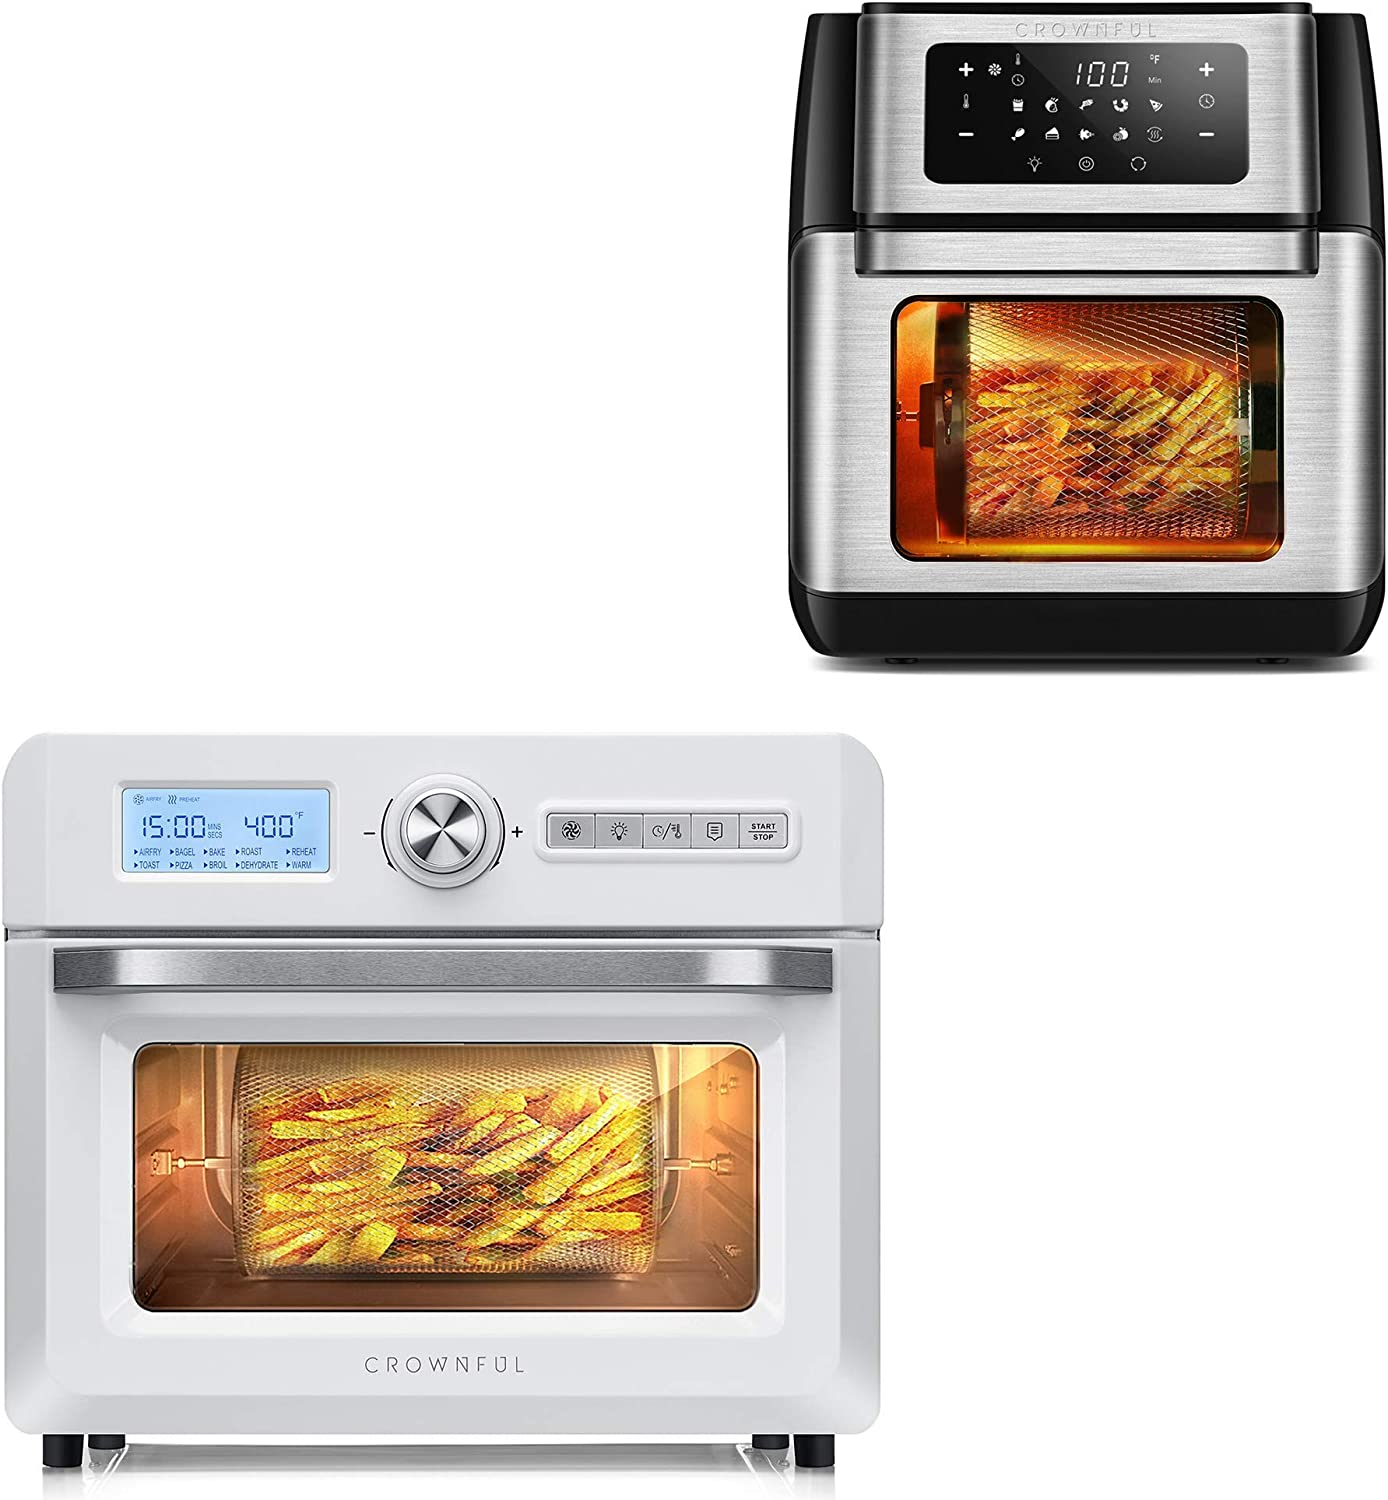 CROWNFUL 9-in-1 Air Fryer Toaster Oven and 19 Quart Air Fryer Oven, Convection Roaster with Rotisserie & Dehydrator